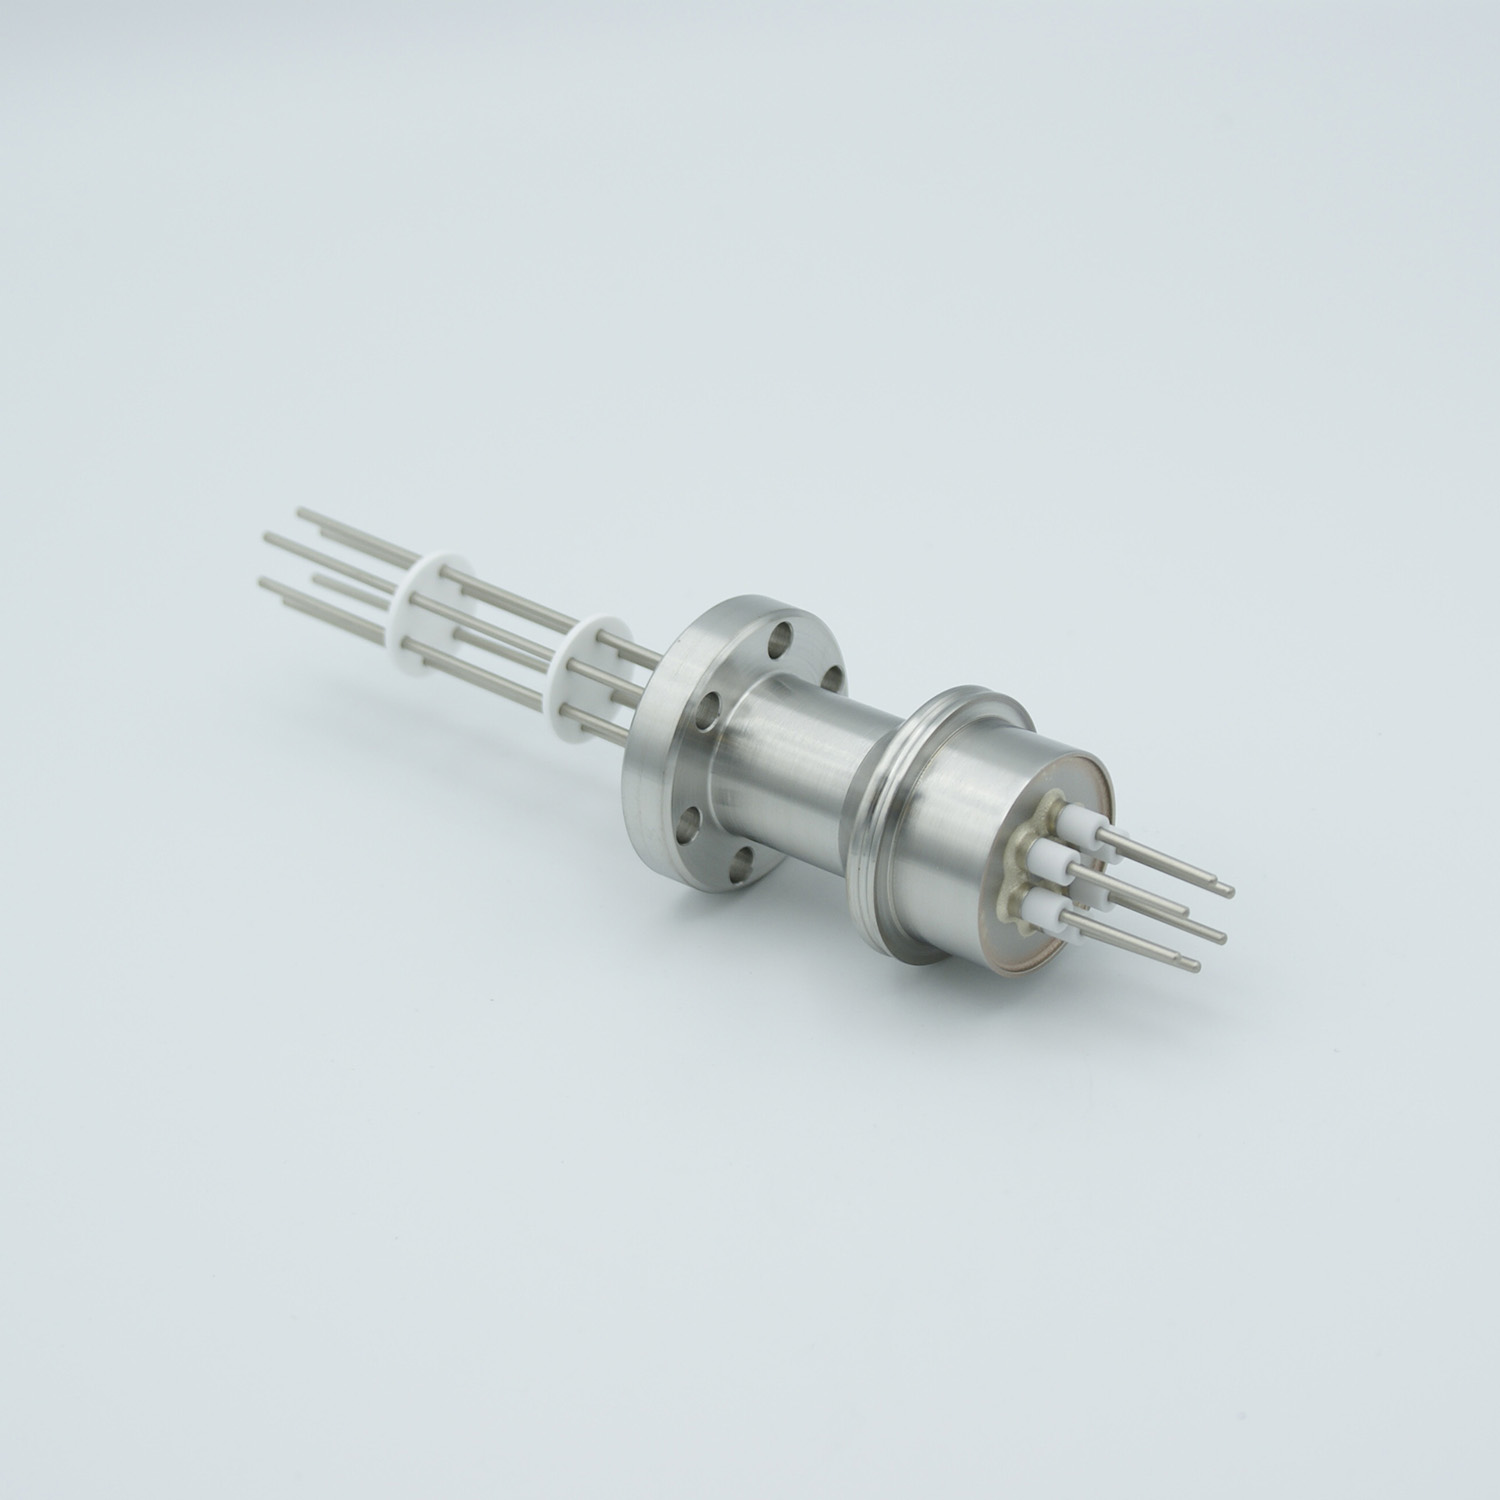 3 pair Thermocouple type-J feedthrough for push on connectors, DN19CF flange